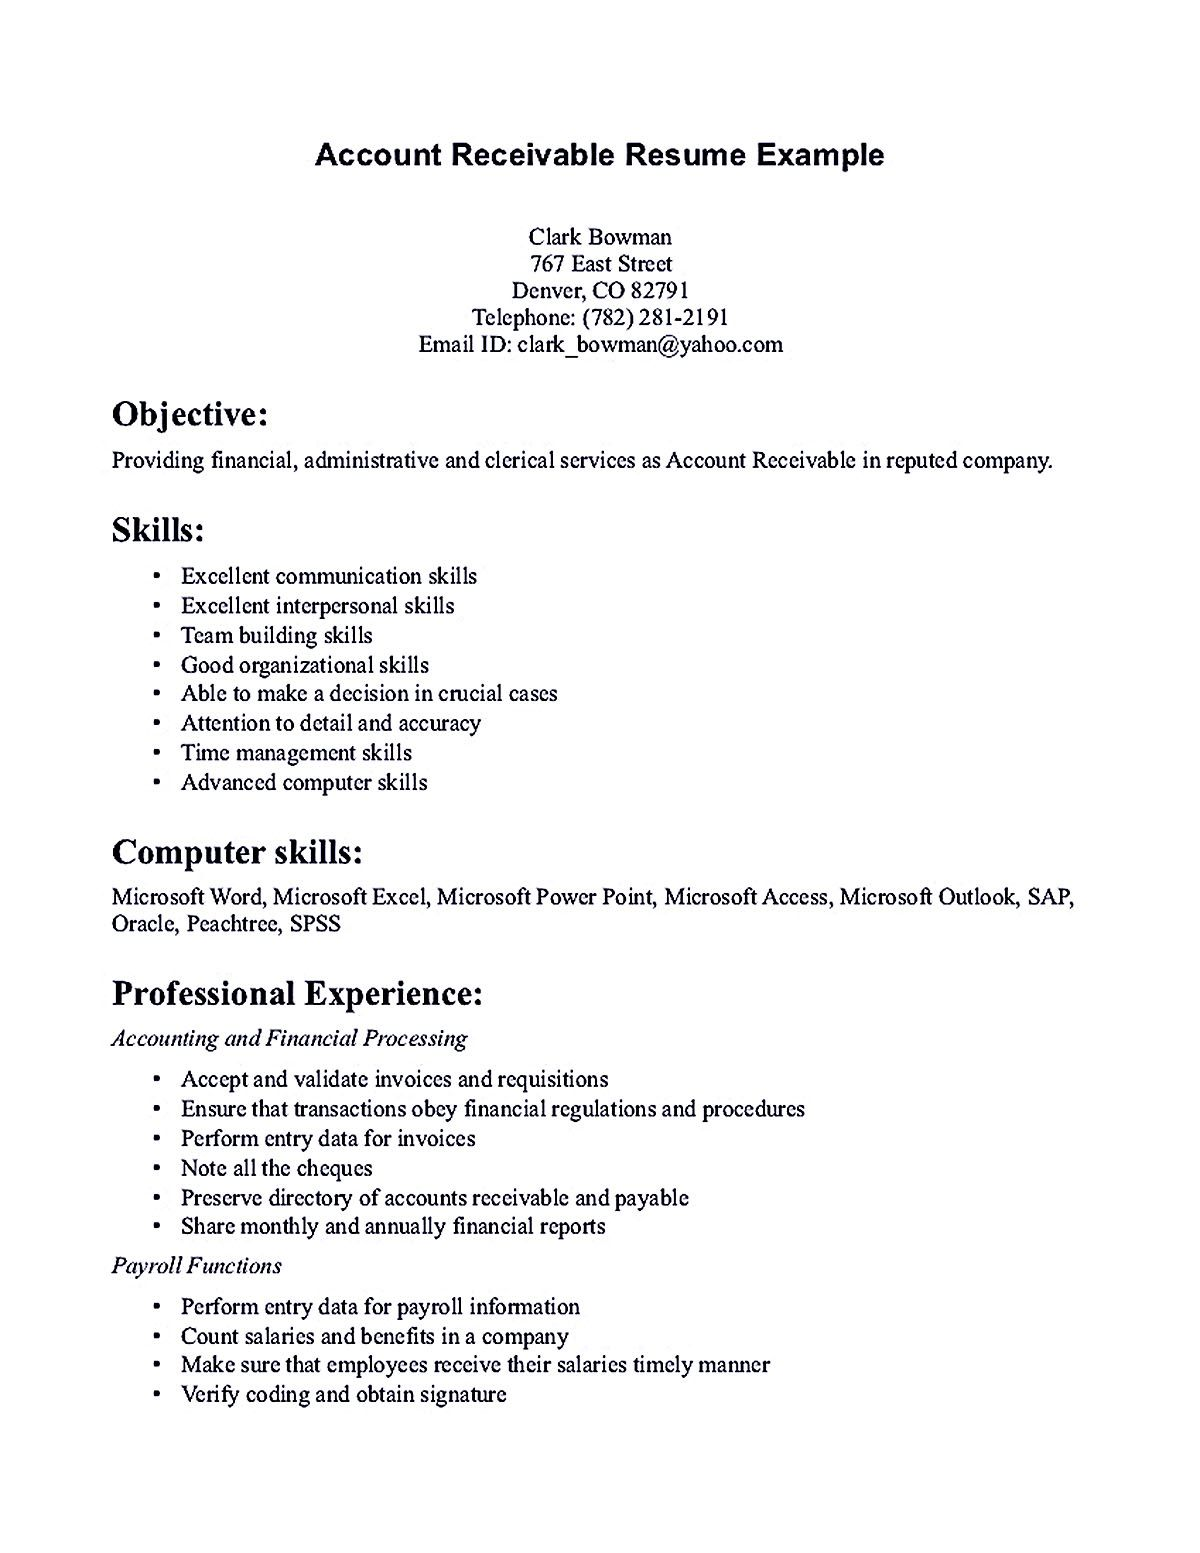 Account Receivable Resume Prepossessing Account Receivable Resume Shows Both Technical And Interpersonal .